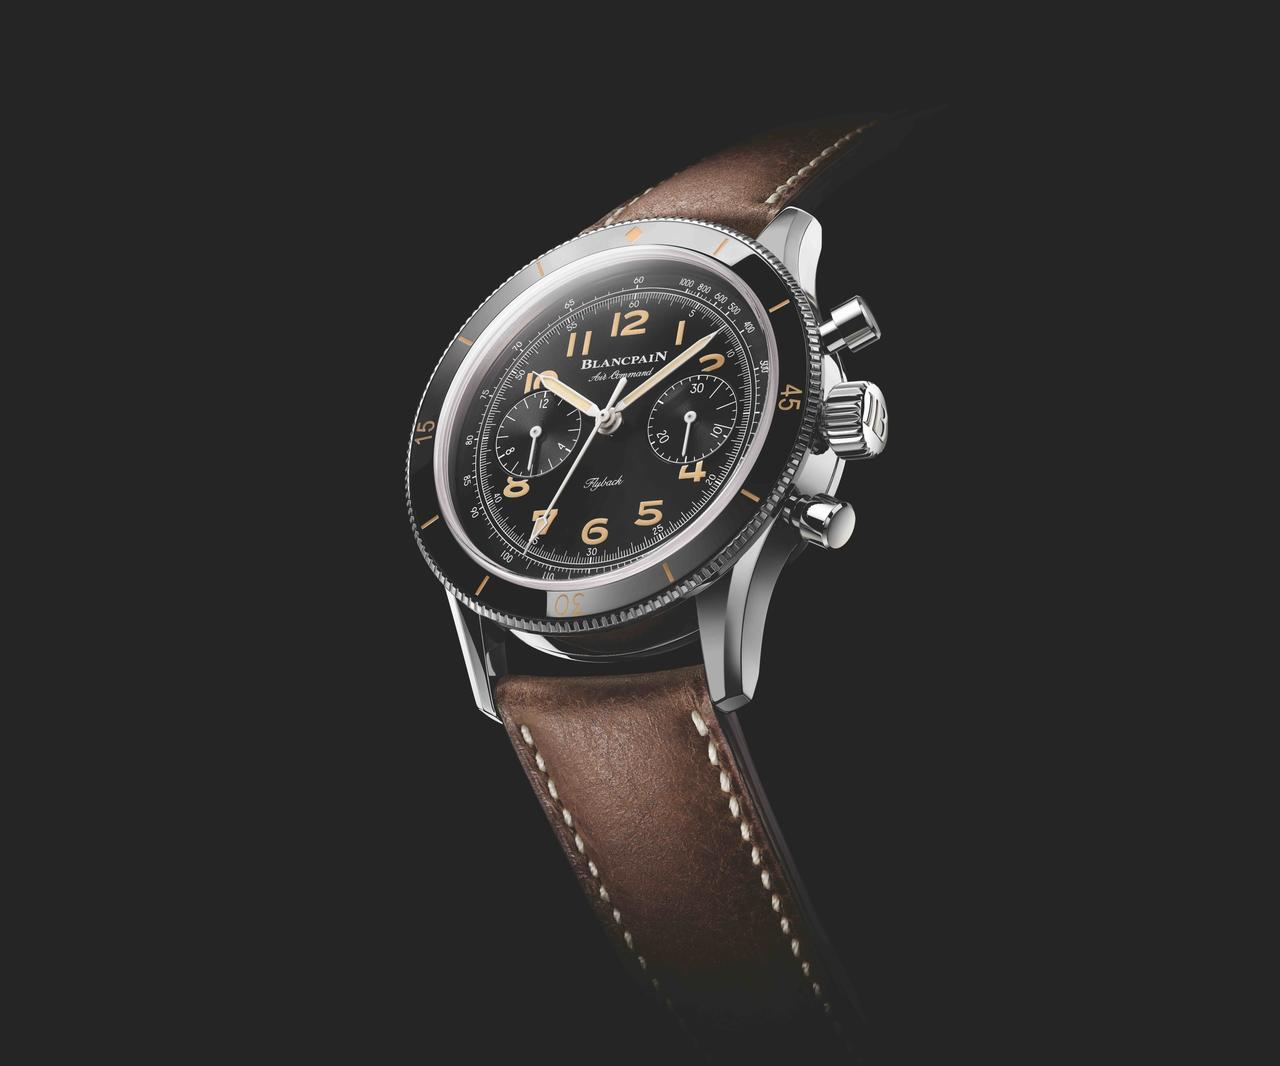 Flying and Diving with Blancpain and Glashütte Original